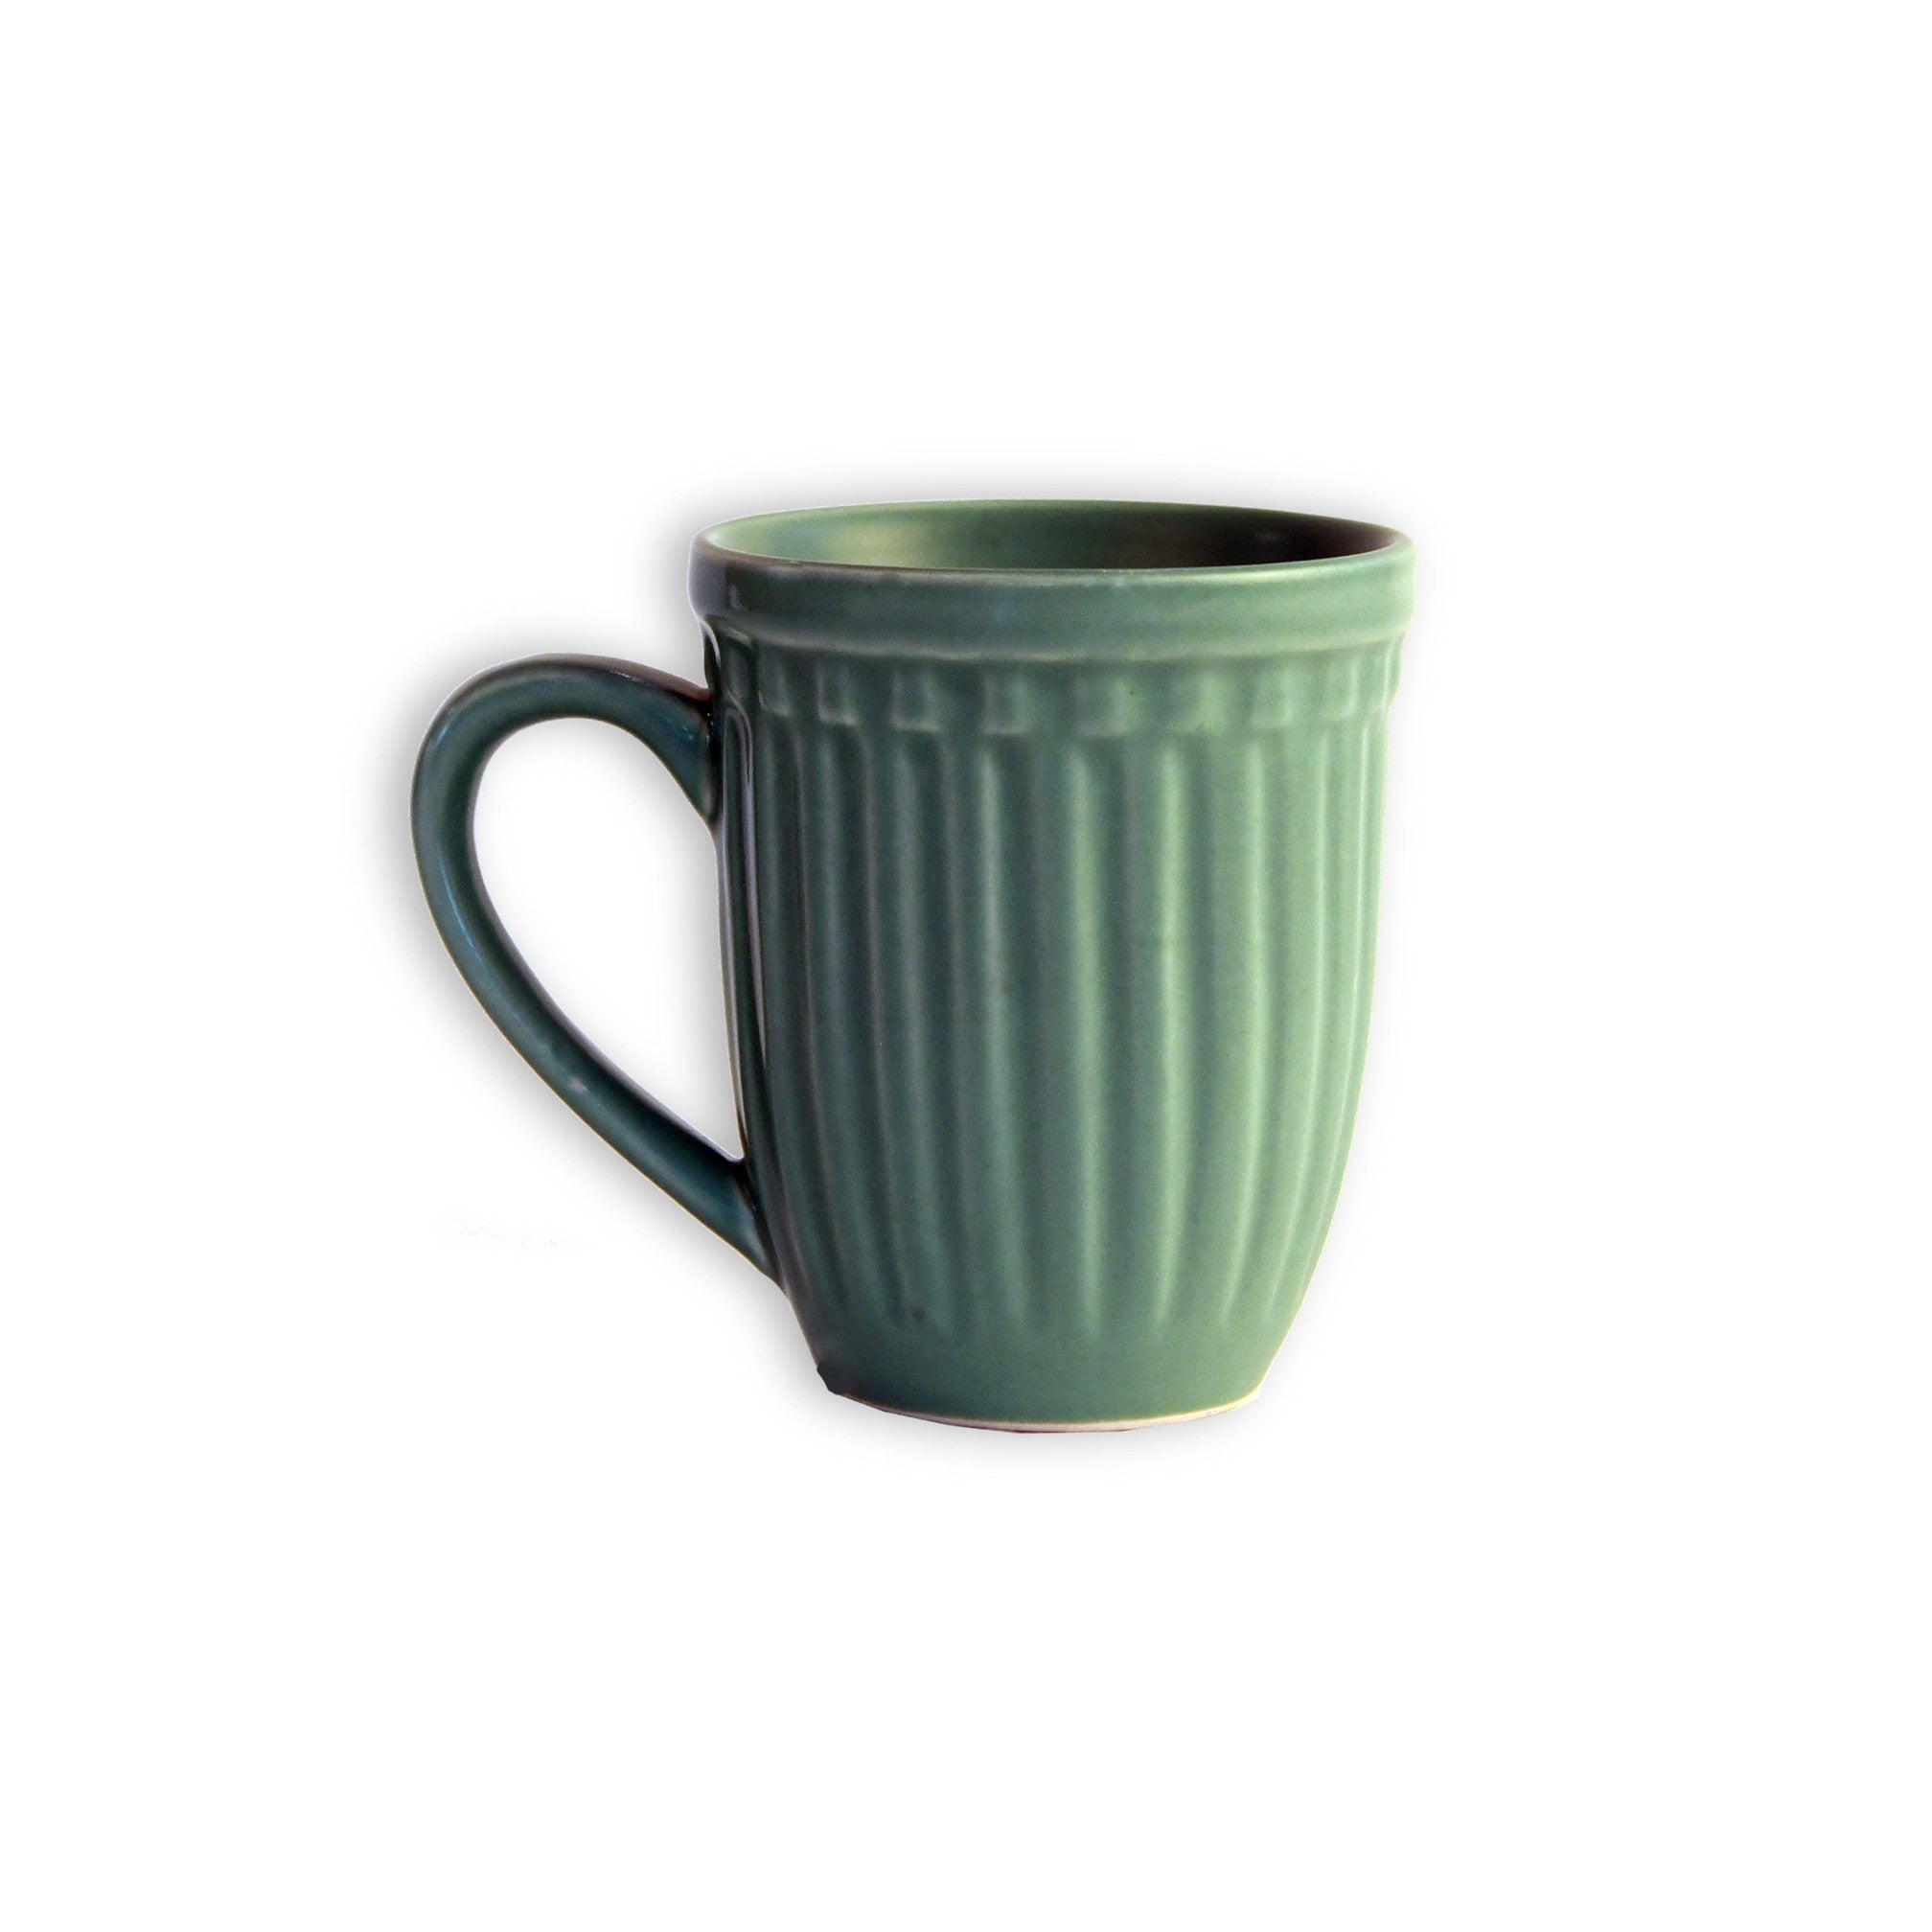 1 BHK Interiors Vintage Look Mint Green Grooved Ceramic Mug